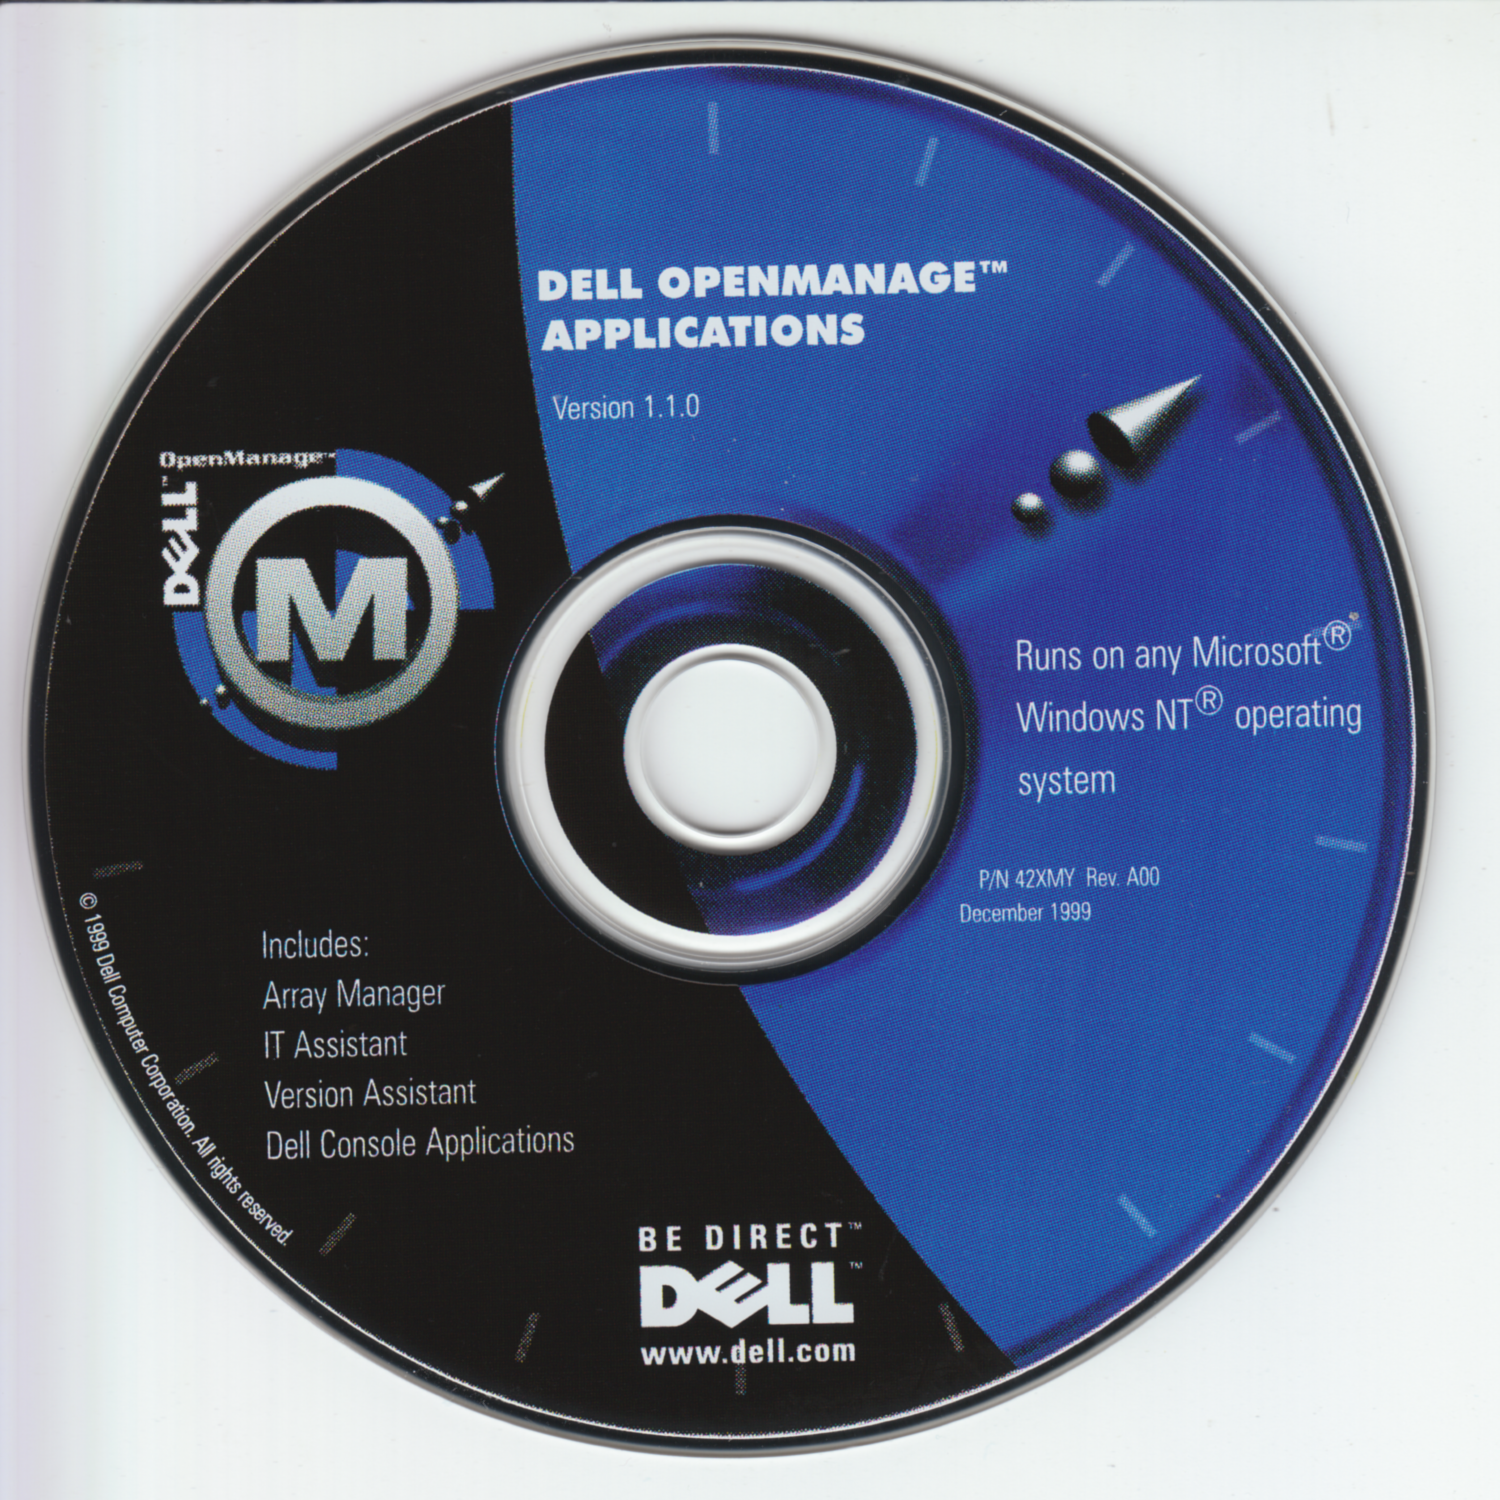 Dell OpenManage Applications v1.1.0 (42XMY-A00)